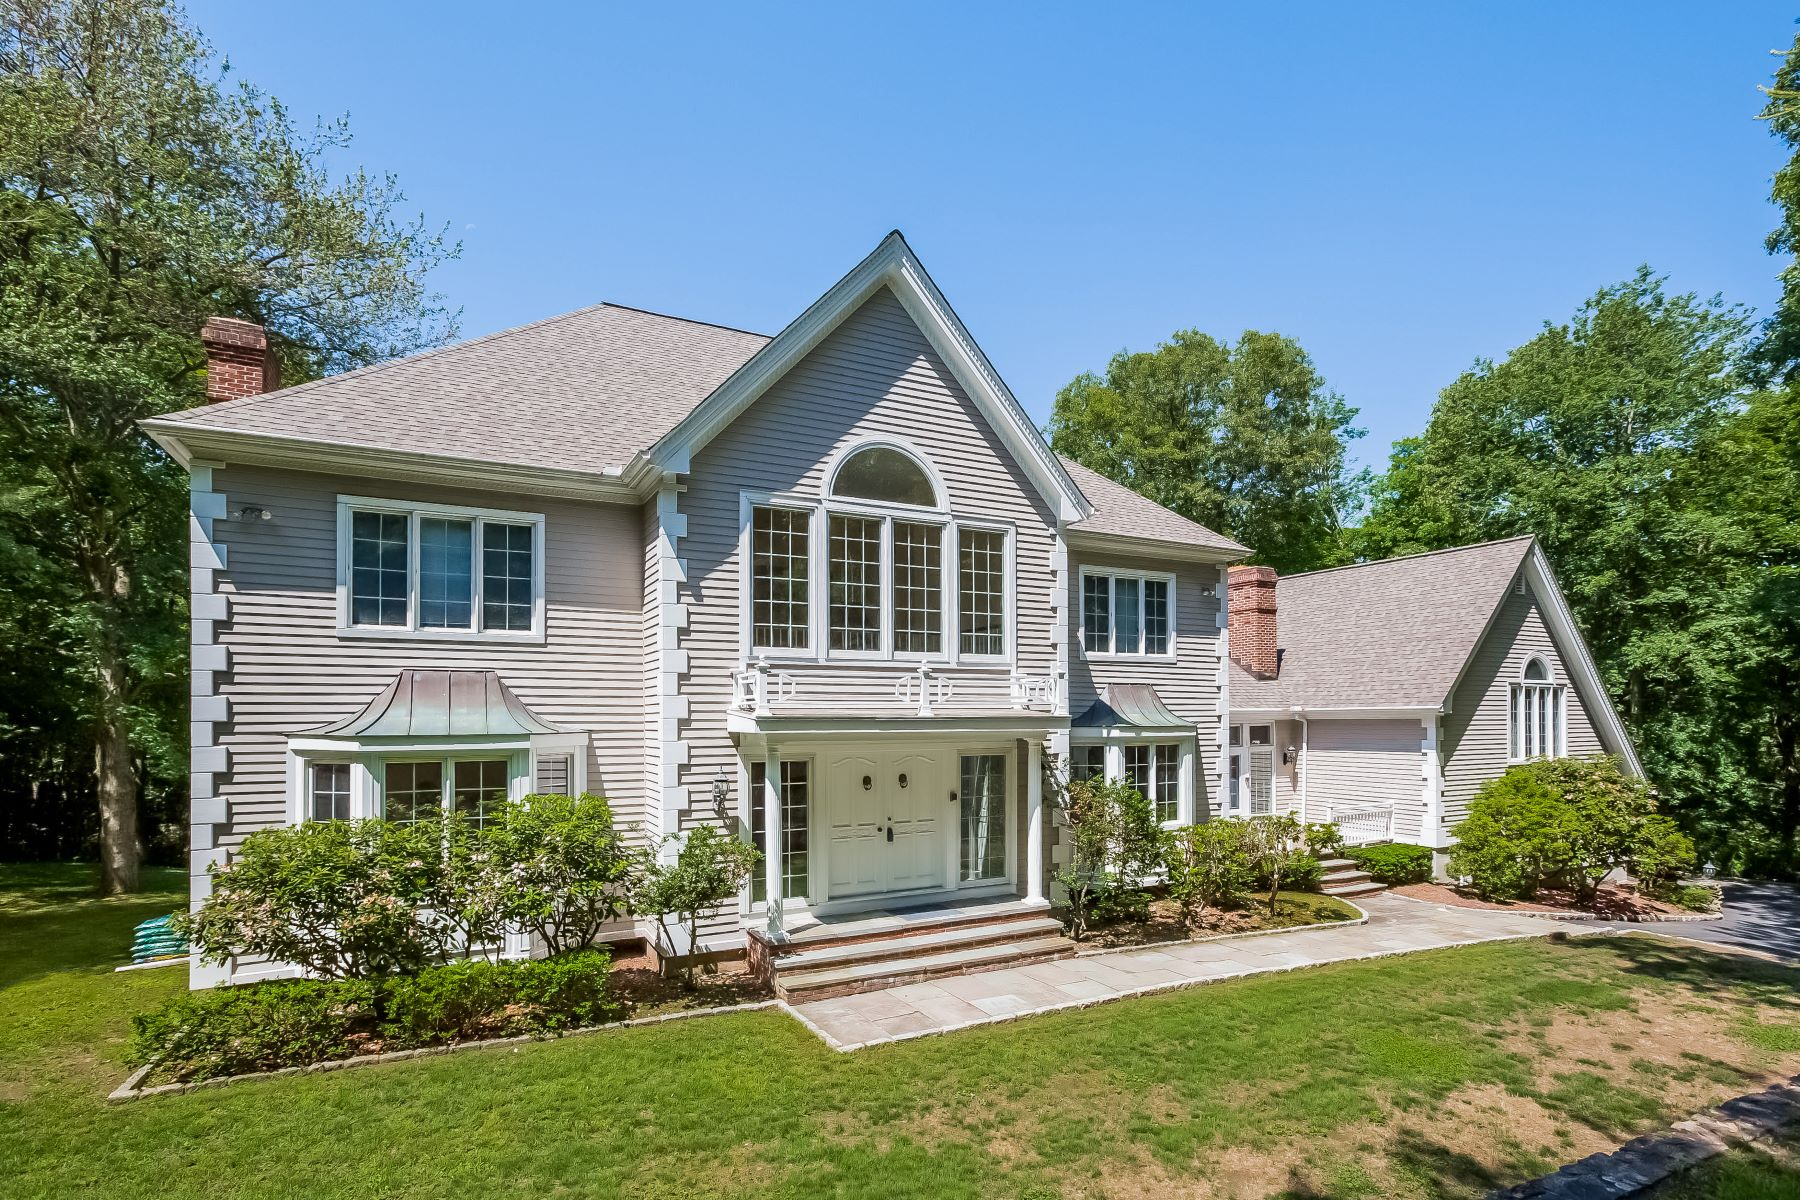 Single Family Homes for Sale at Refined Living 39 11 O Clock Road Weston, Connecticut 06883 United States